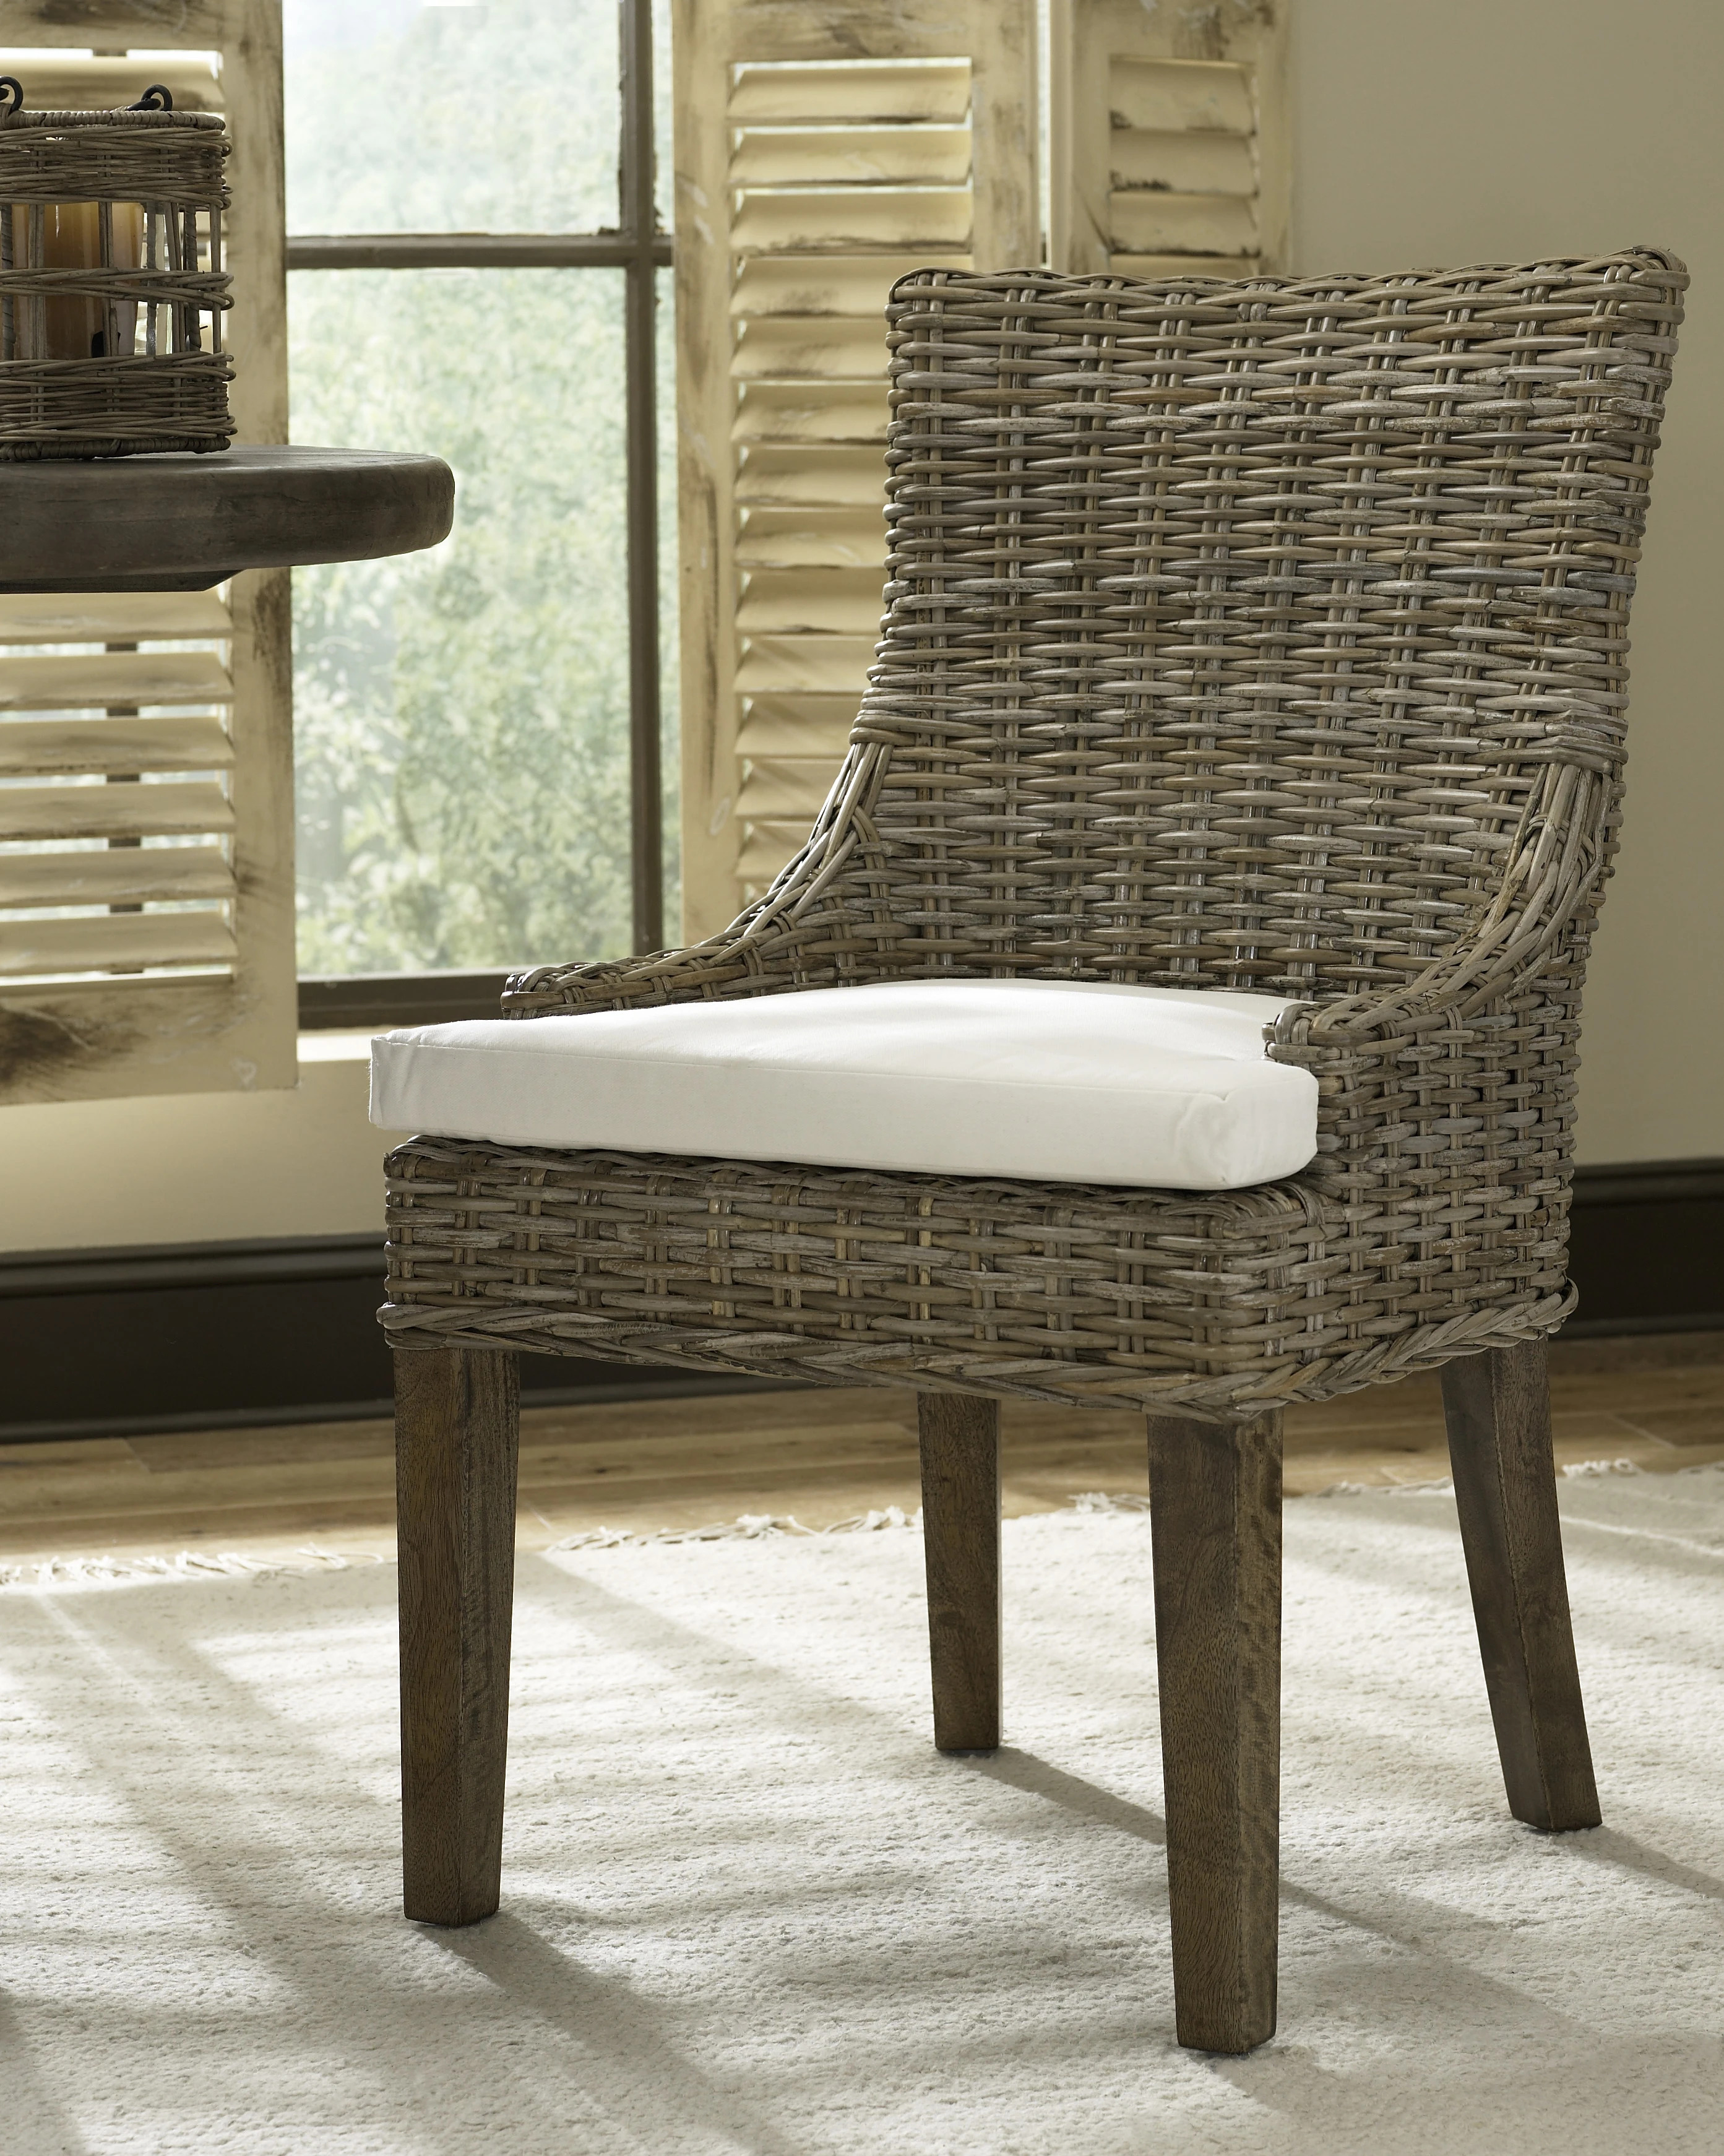 Alfresco Dining Chair Set of 2 | Padma's Plantation